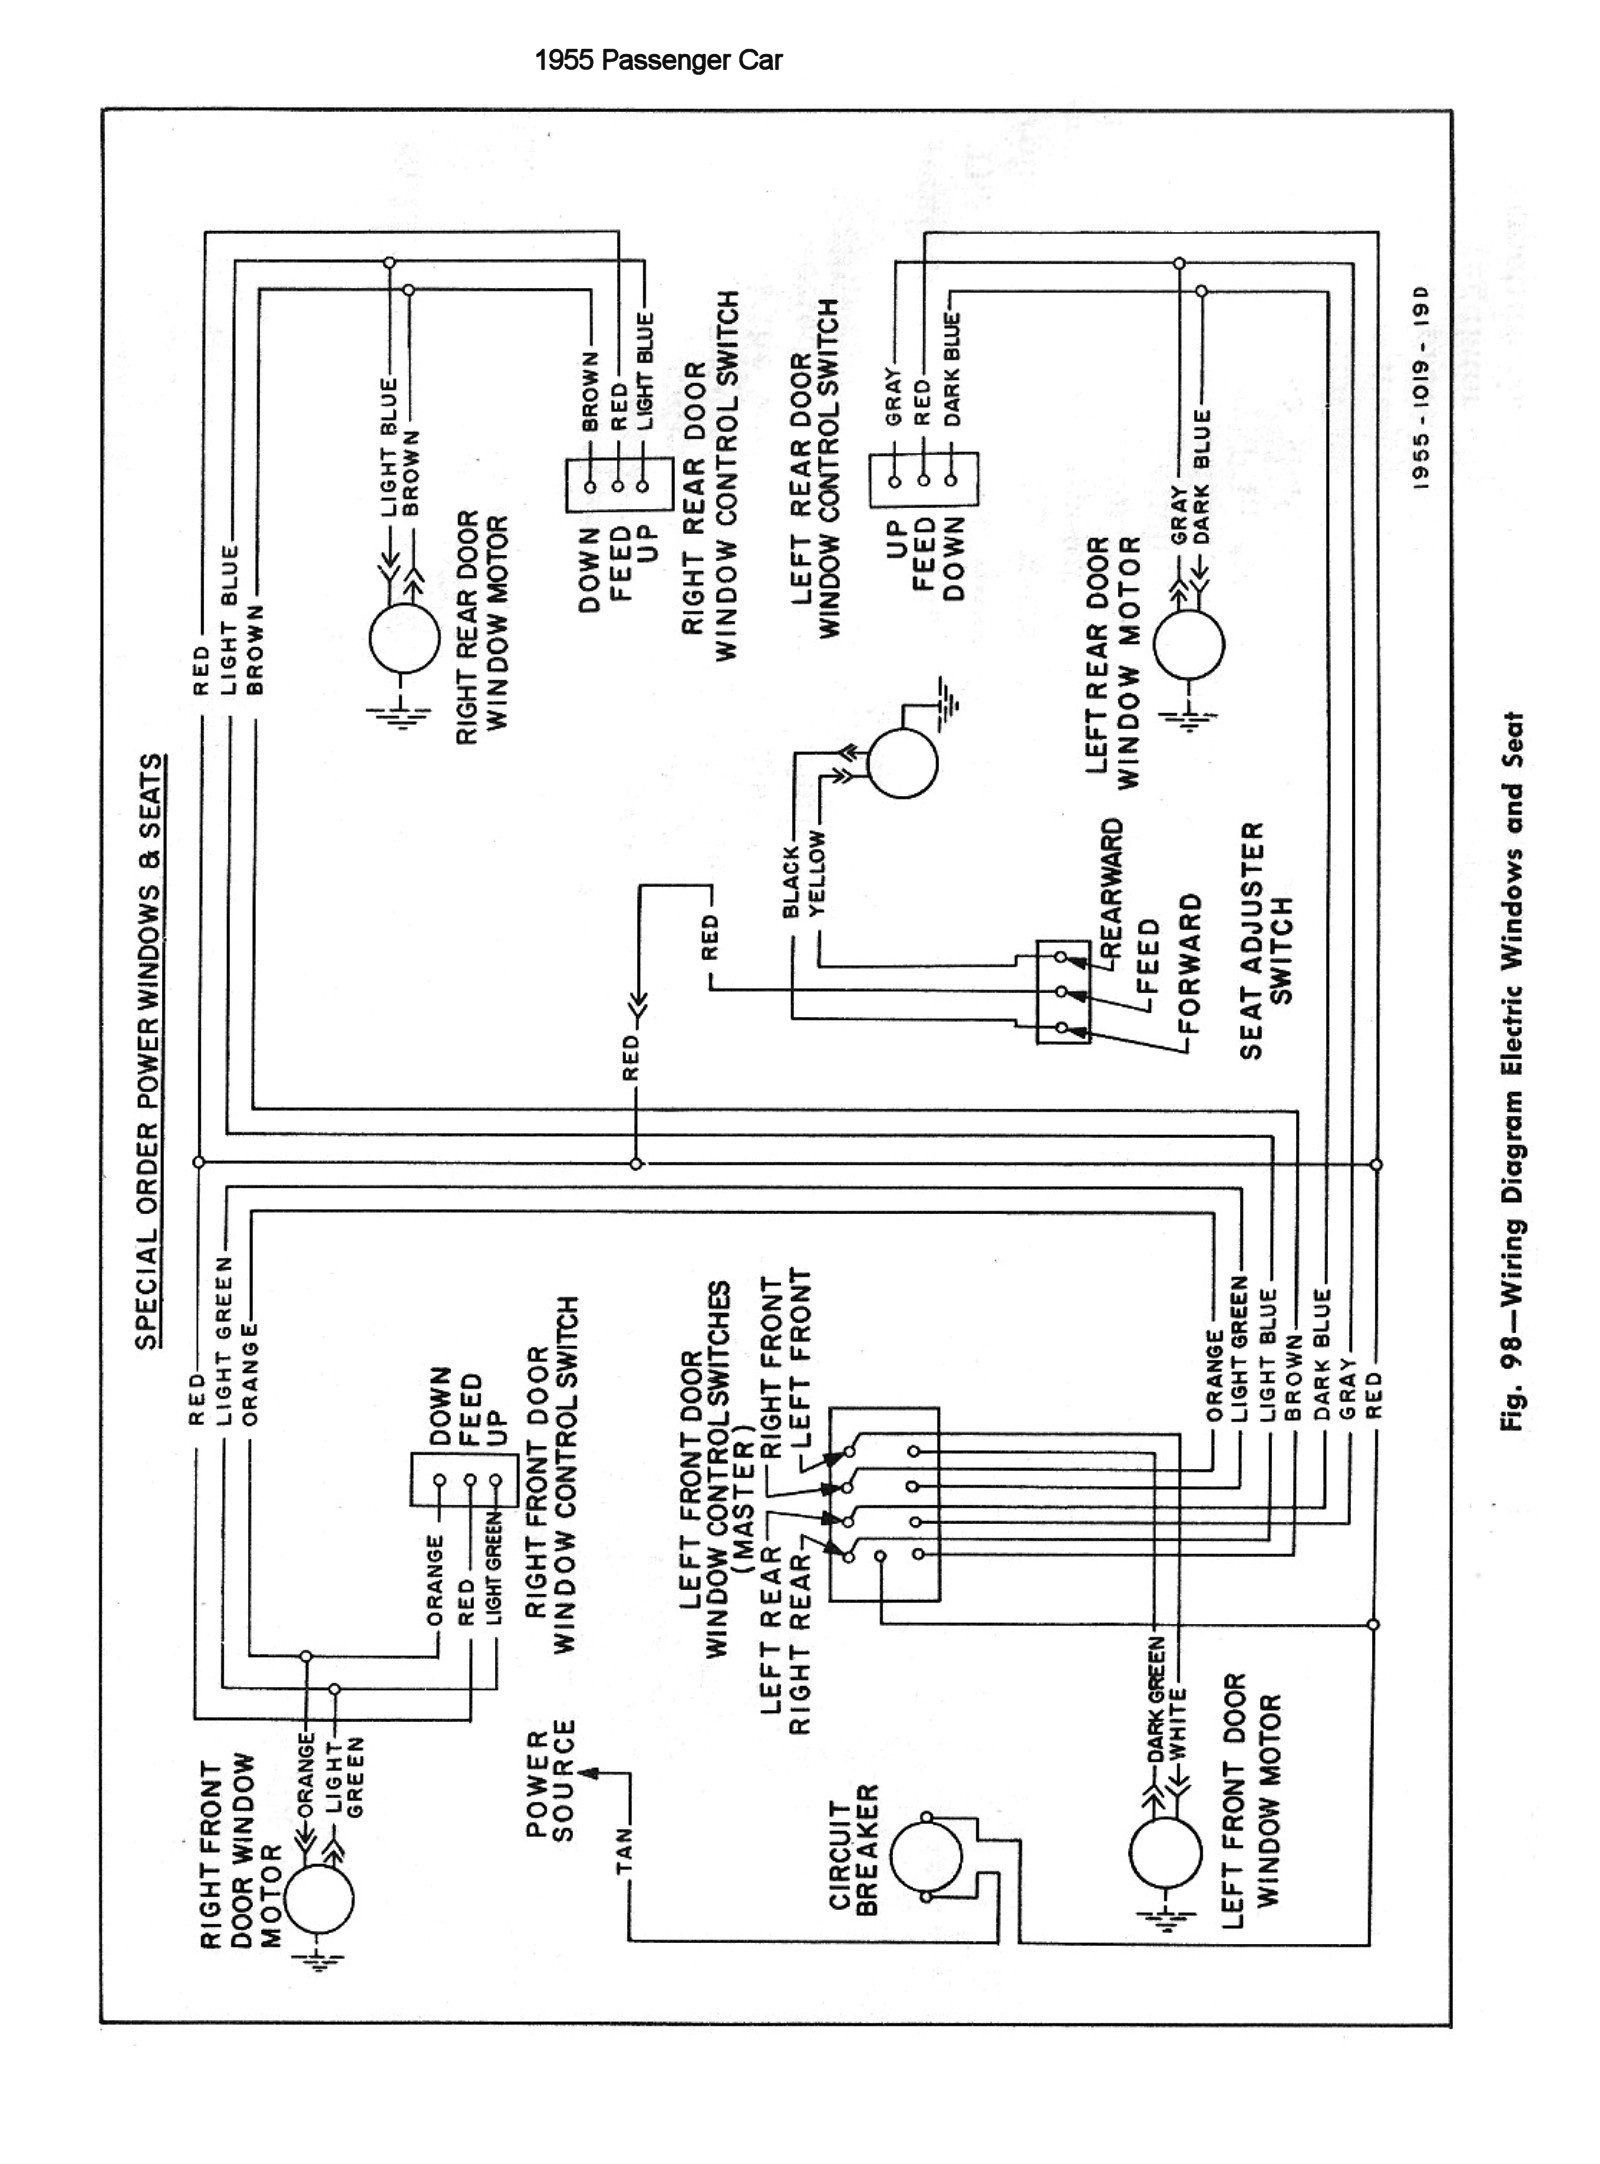 Empi Turn Signal Wiring Diagram Worksheet And 1955 Chevy Wiringdiagram Org Rh Pinterest Com Basic